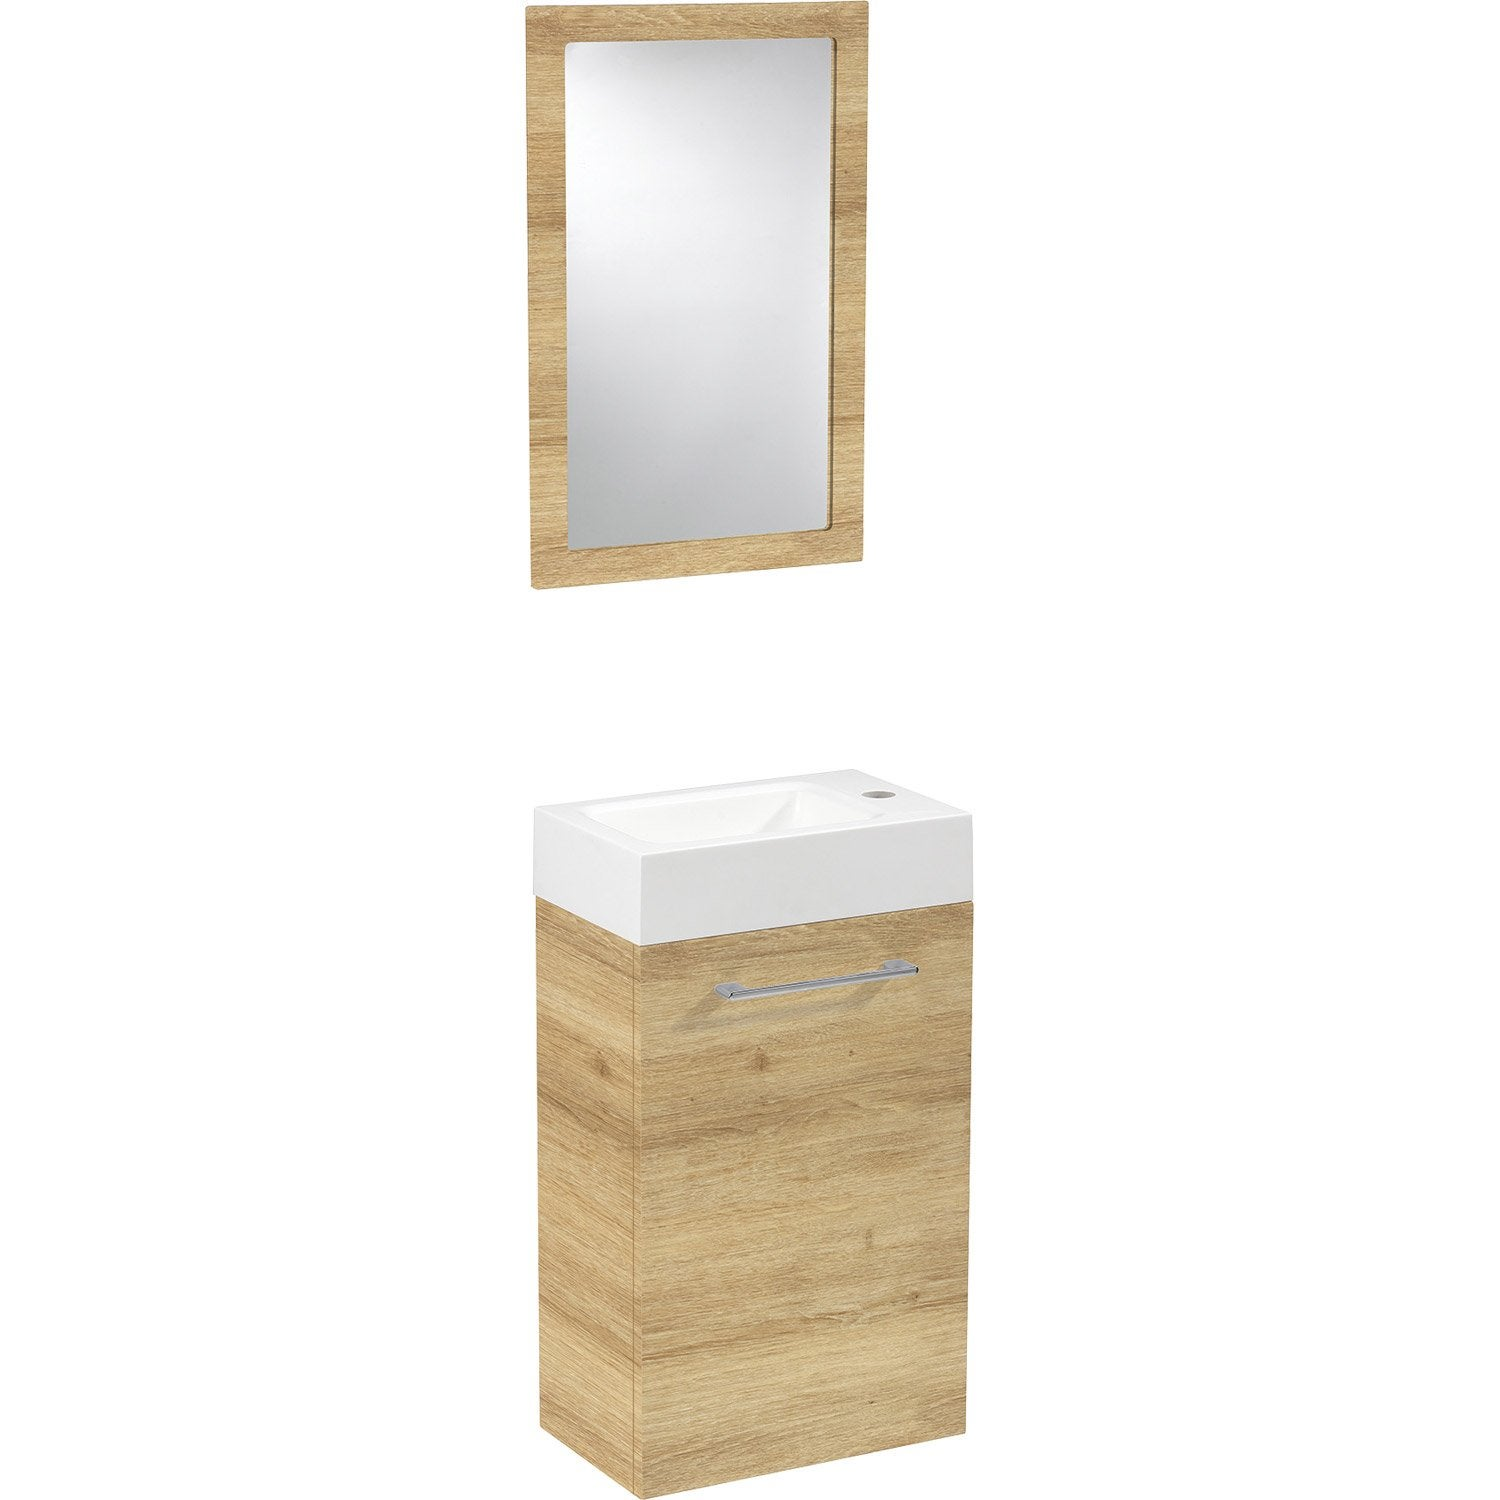 Meuble lave mains avec miroir sensea remix leroy merlin for Petit toilette leroy merlin